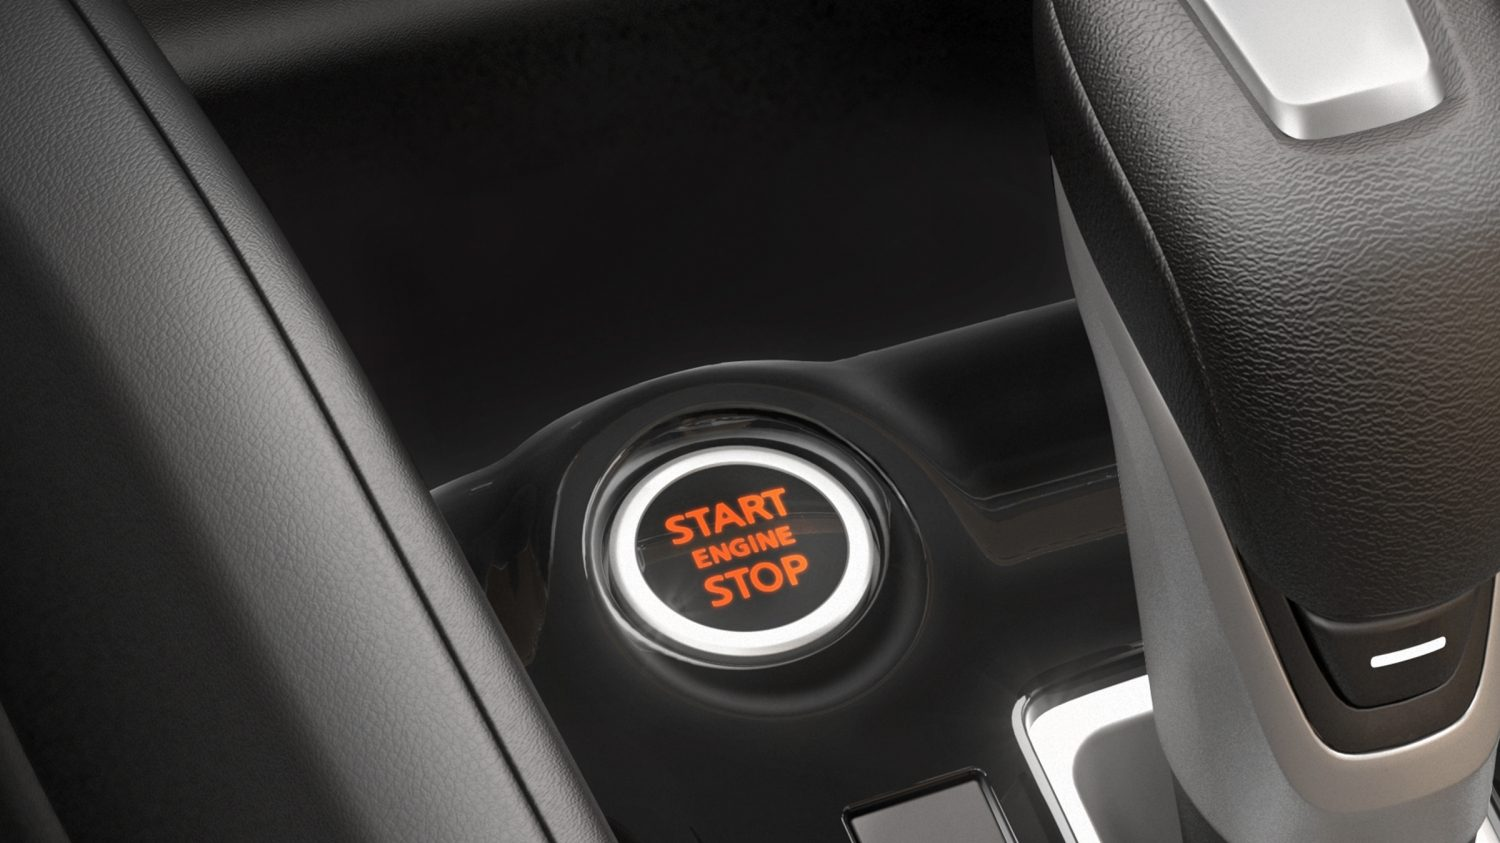 Nissan Kicks push button ignition detail